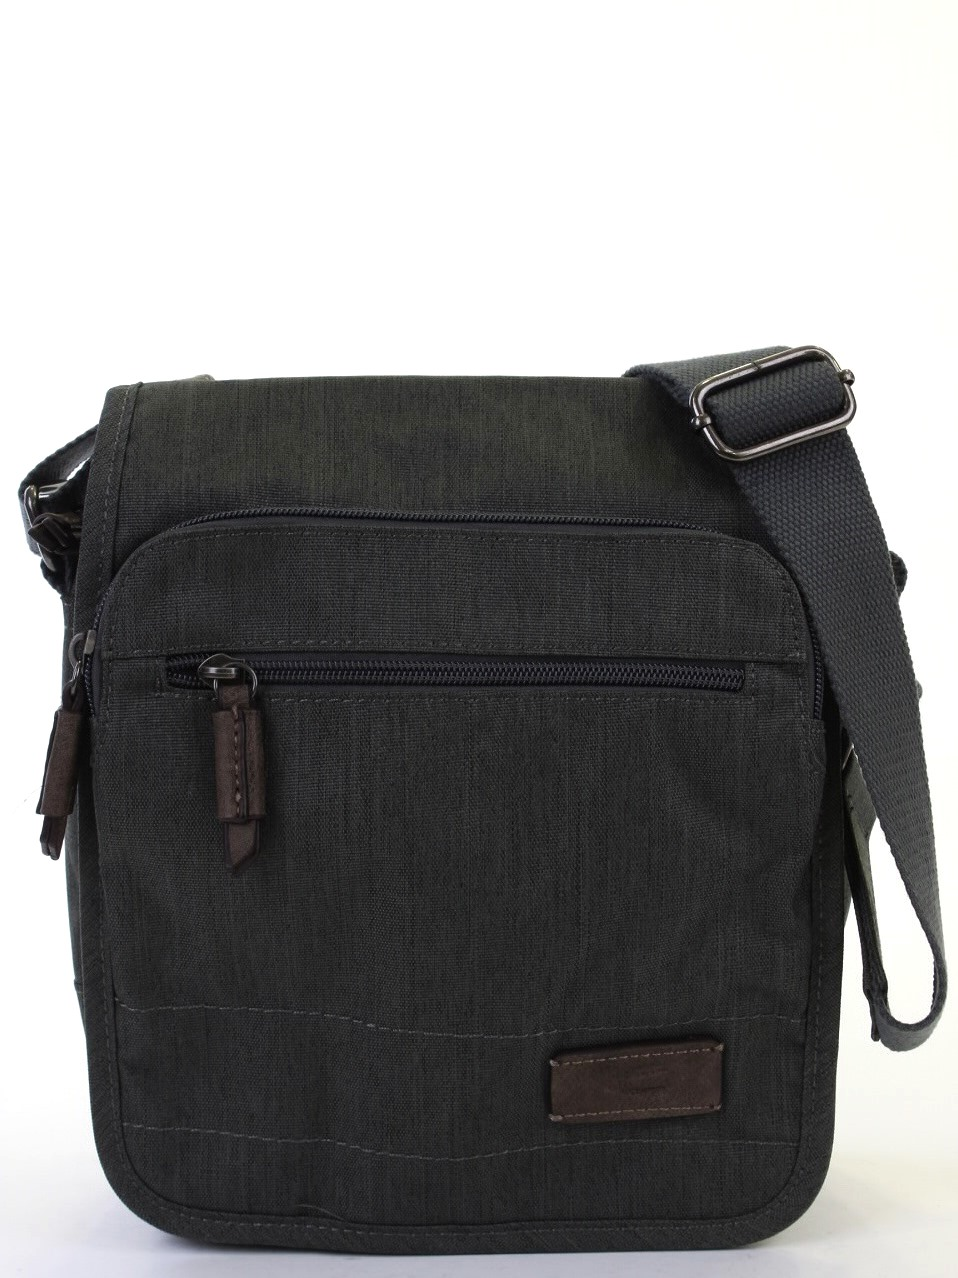 Bags Camel Active - 385 267601